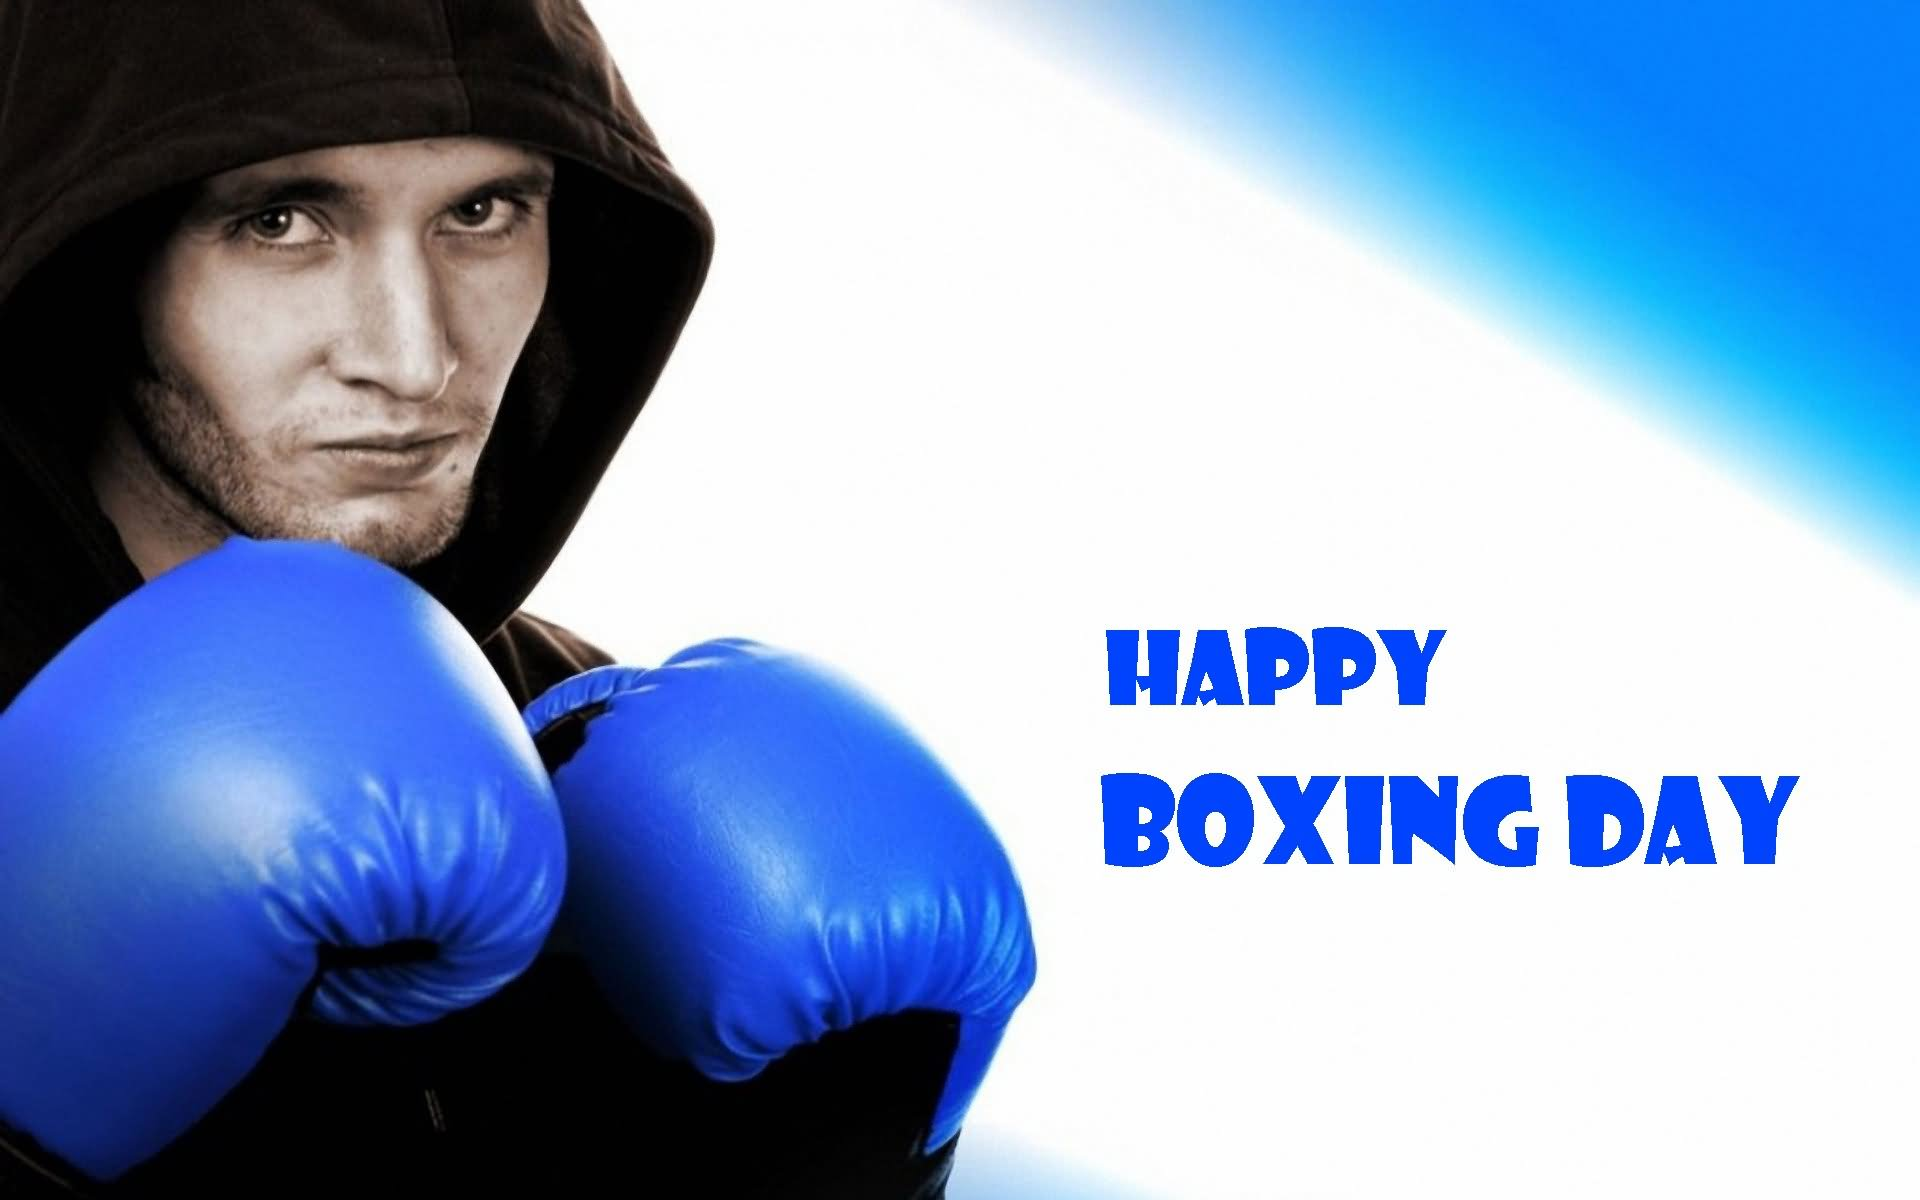 Boxing Day Wishes Quotes Pinterest